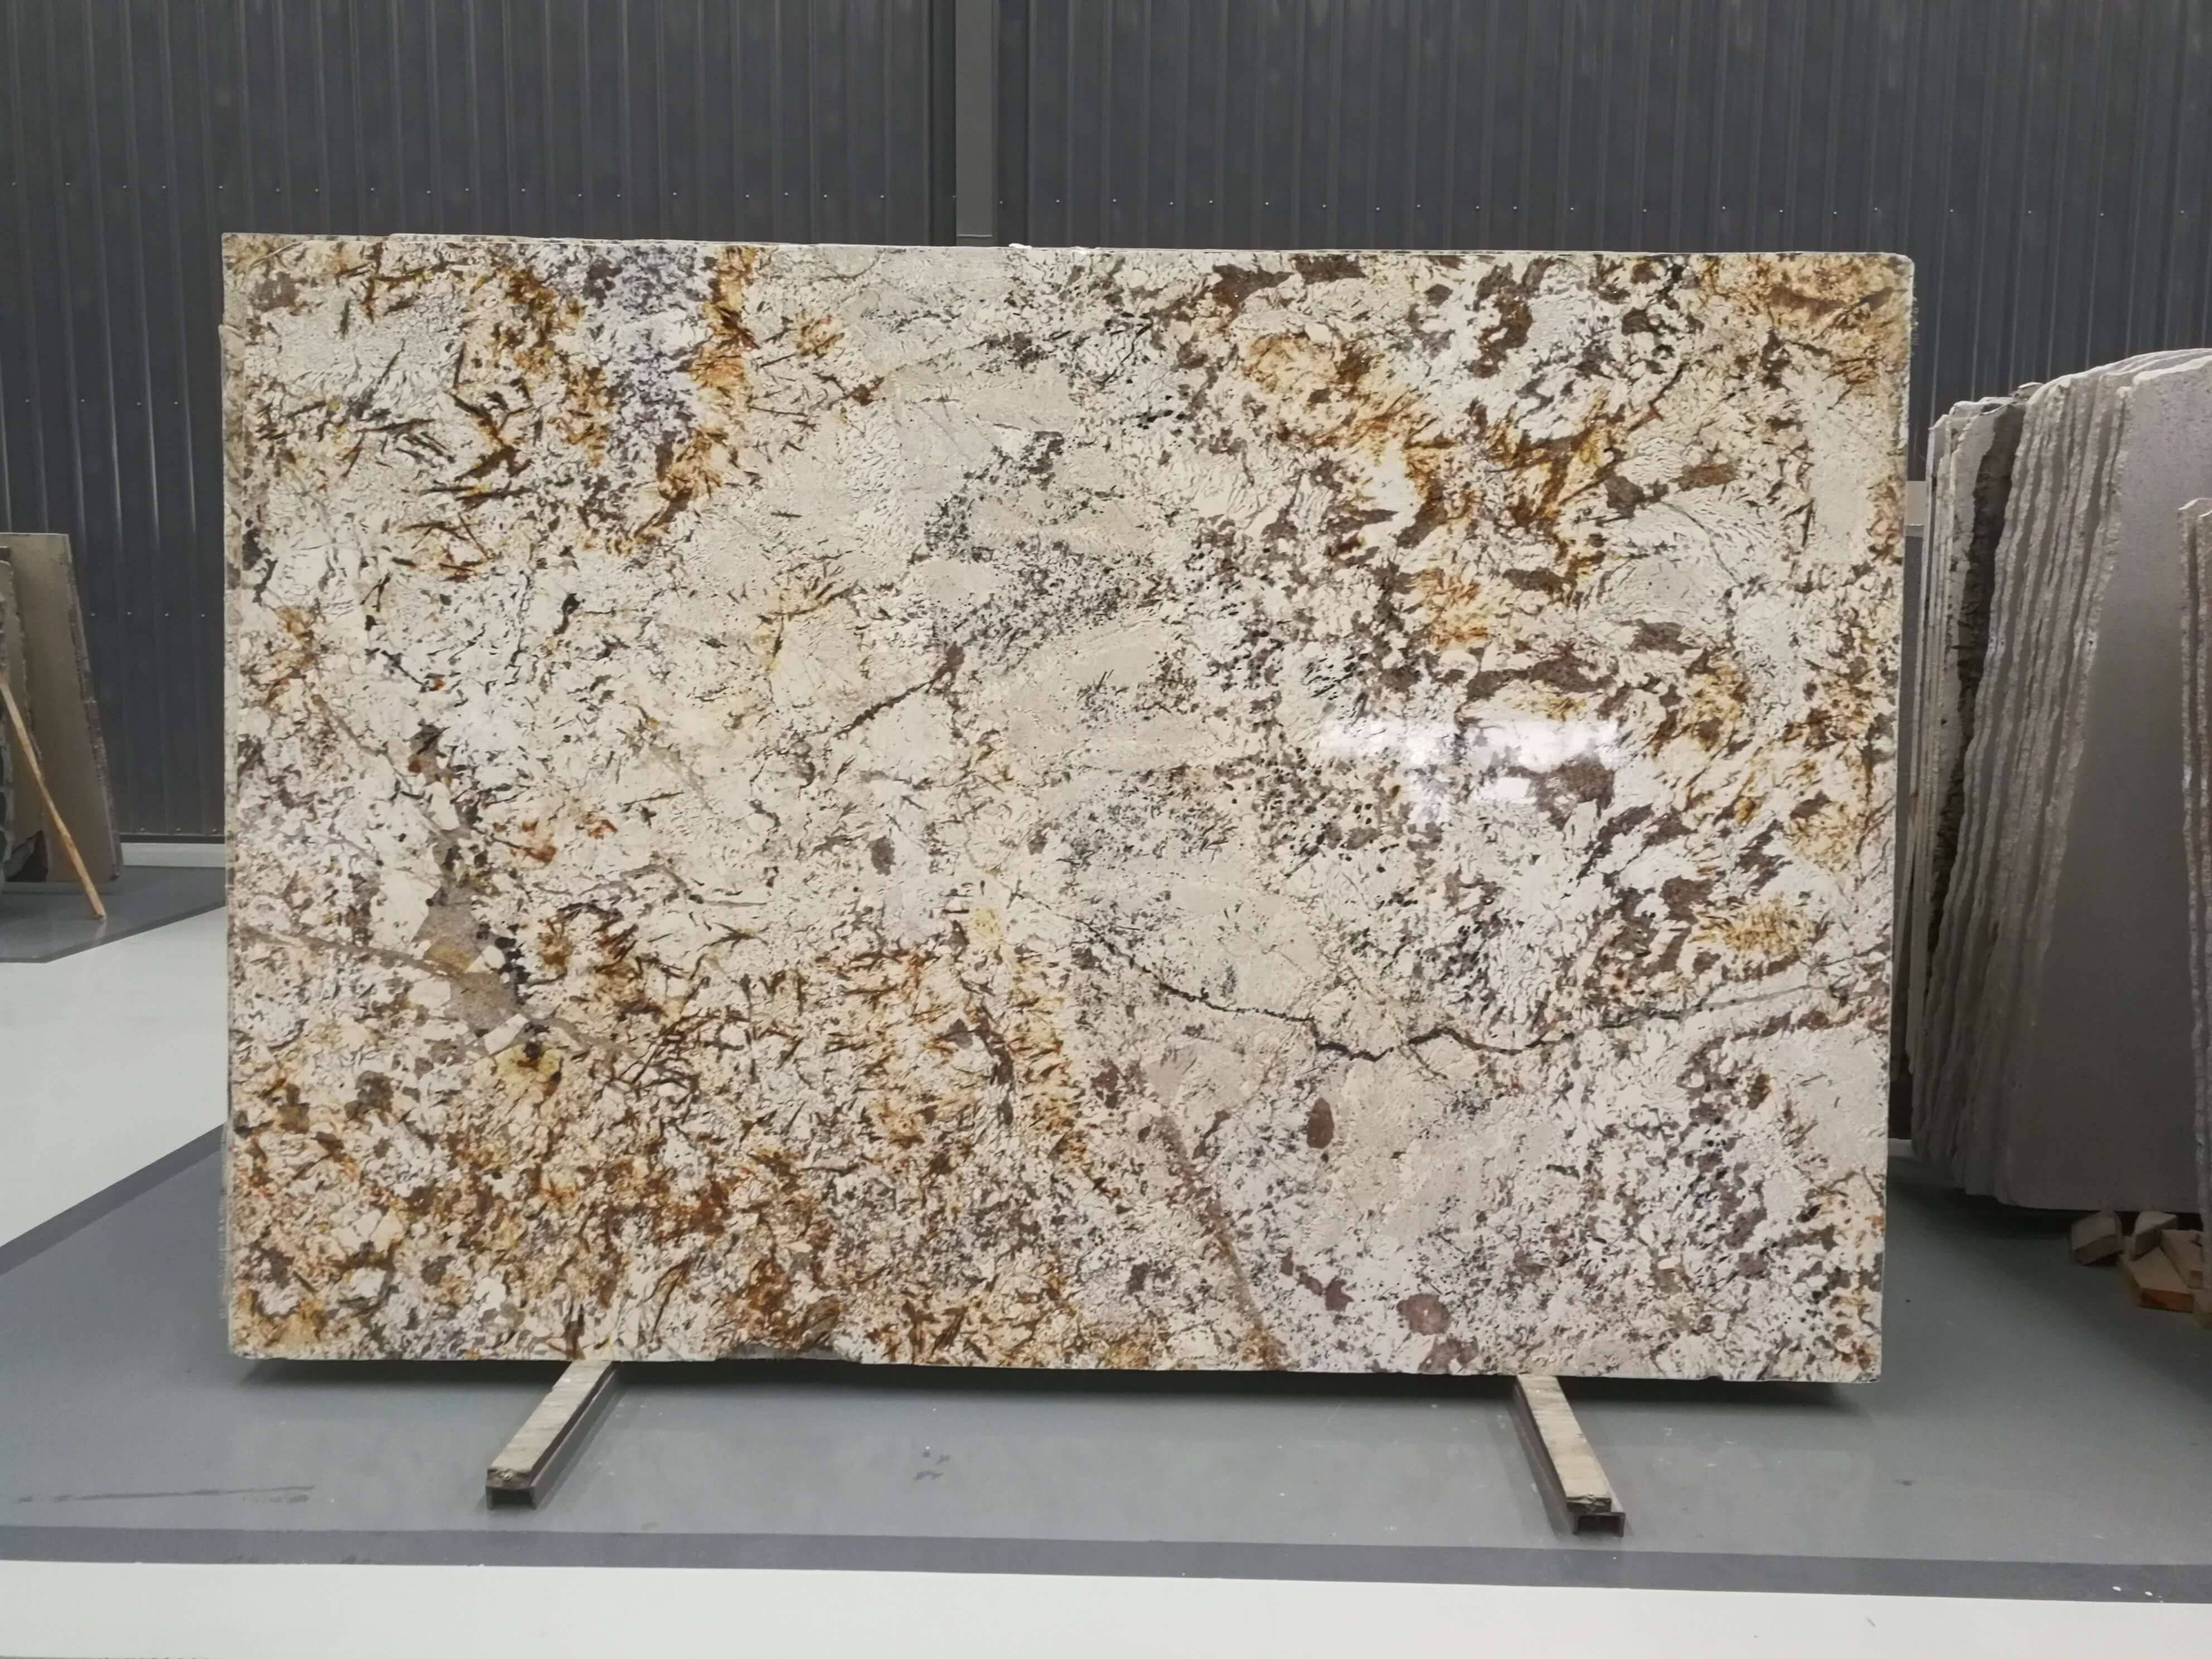 Cheap PriceList for Sunset Gold Granite Slabs -